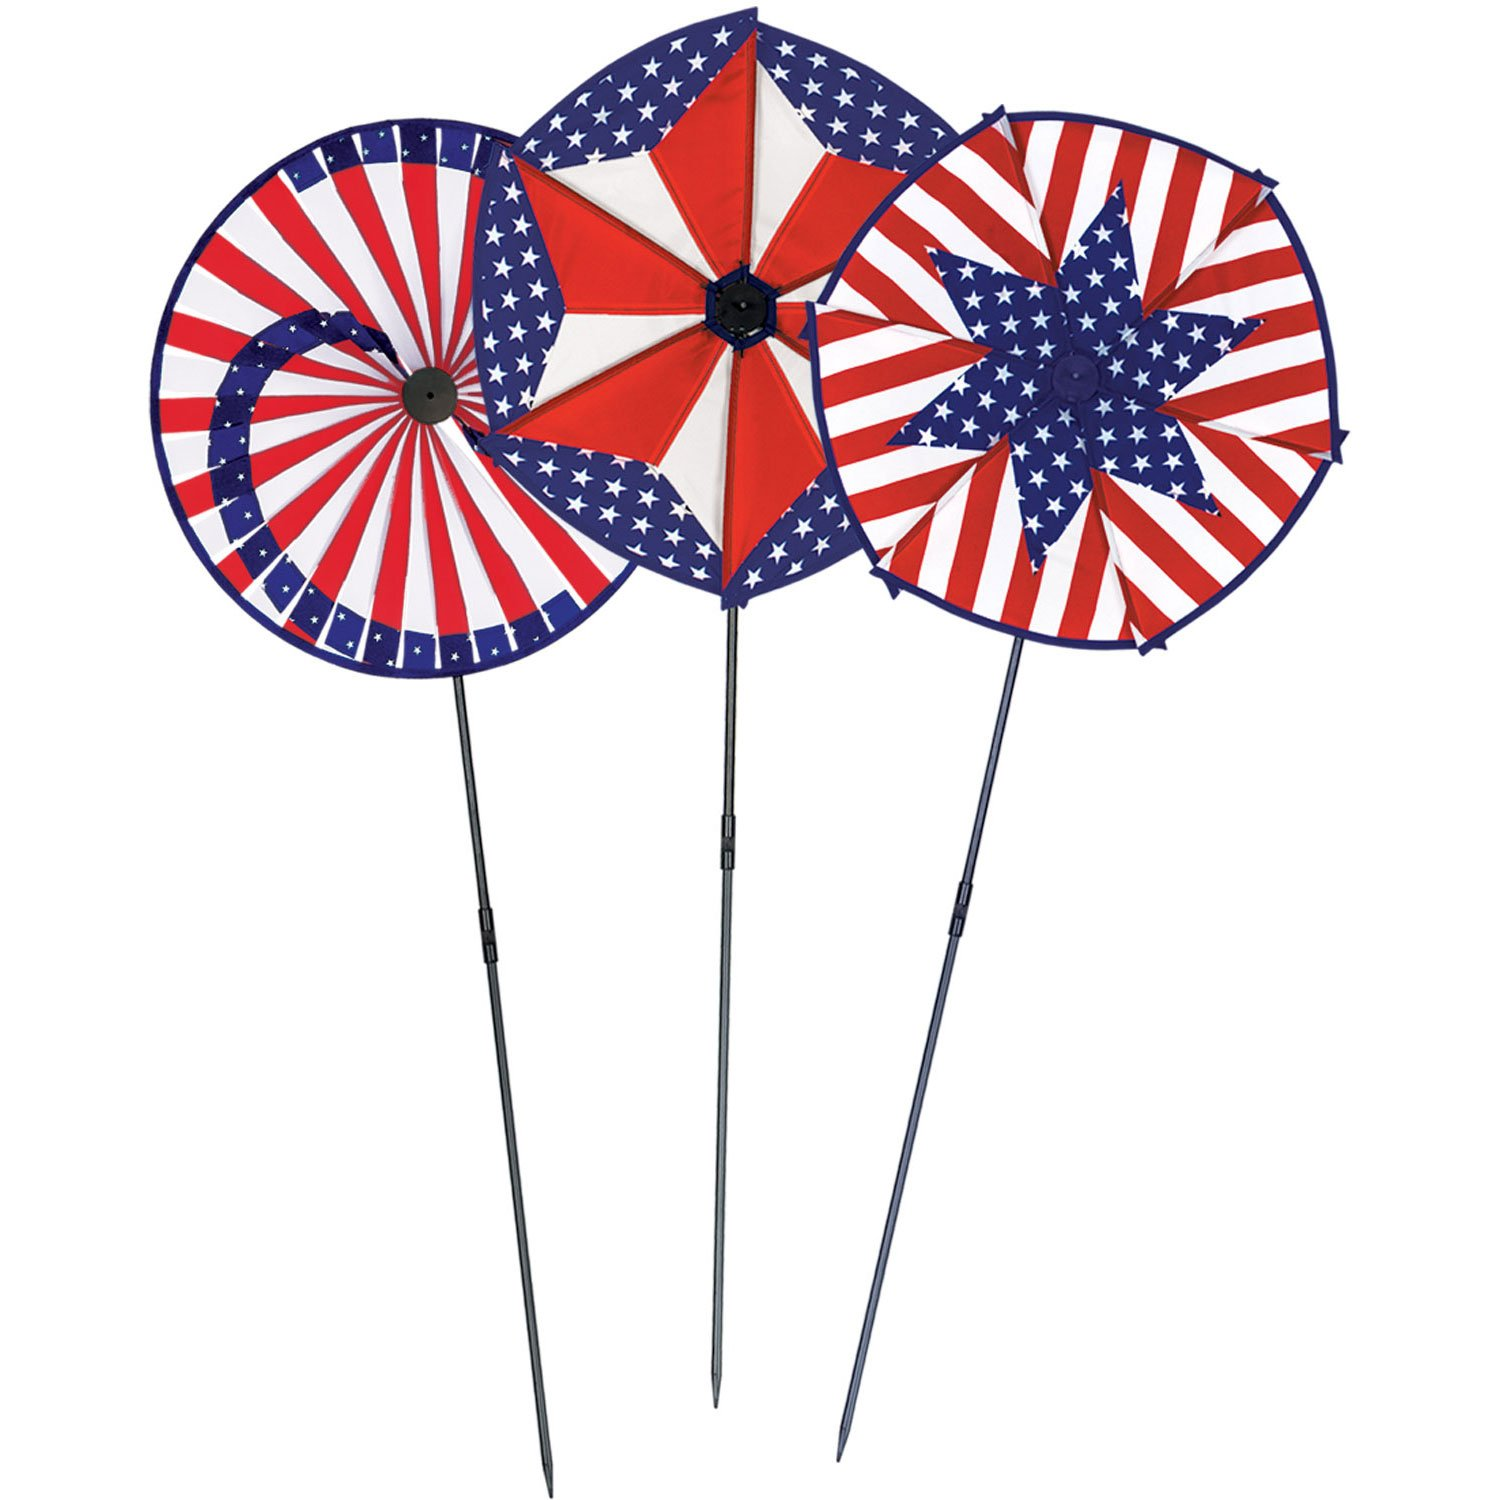 1 count stars /& stripes designs Party Accessory 1//Pkg Patriotic Wind-Wheels The Beistle Company 50690